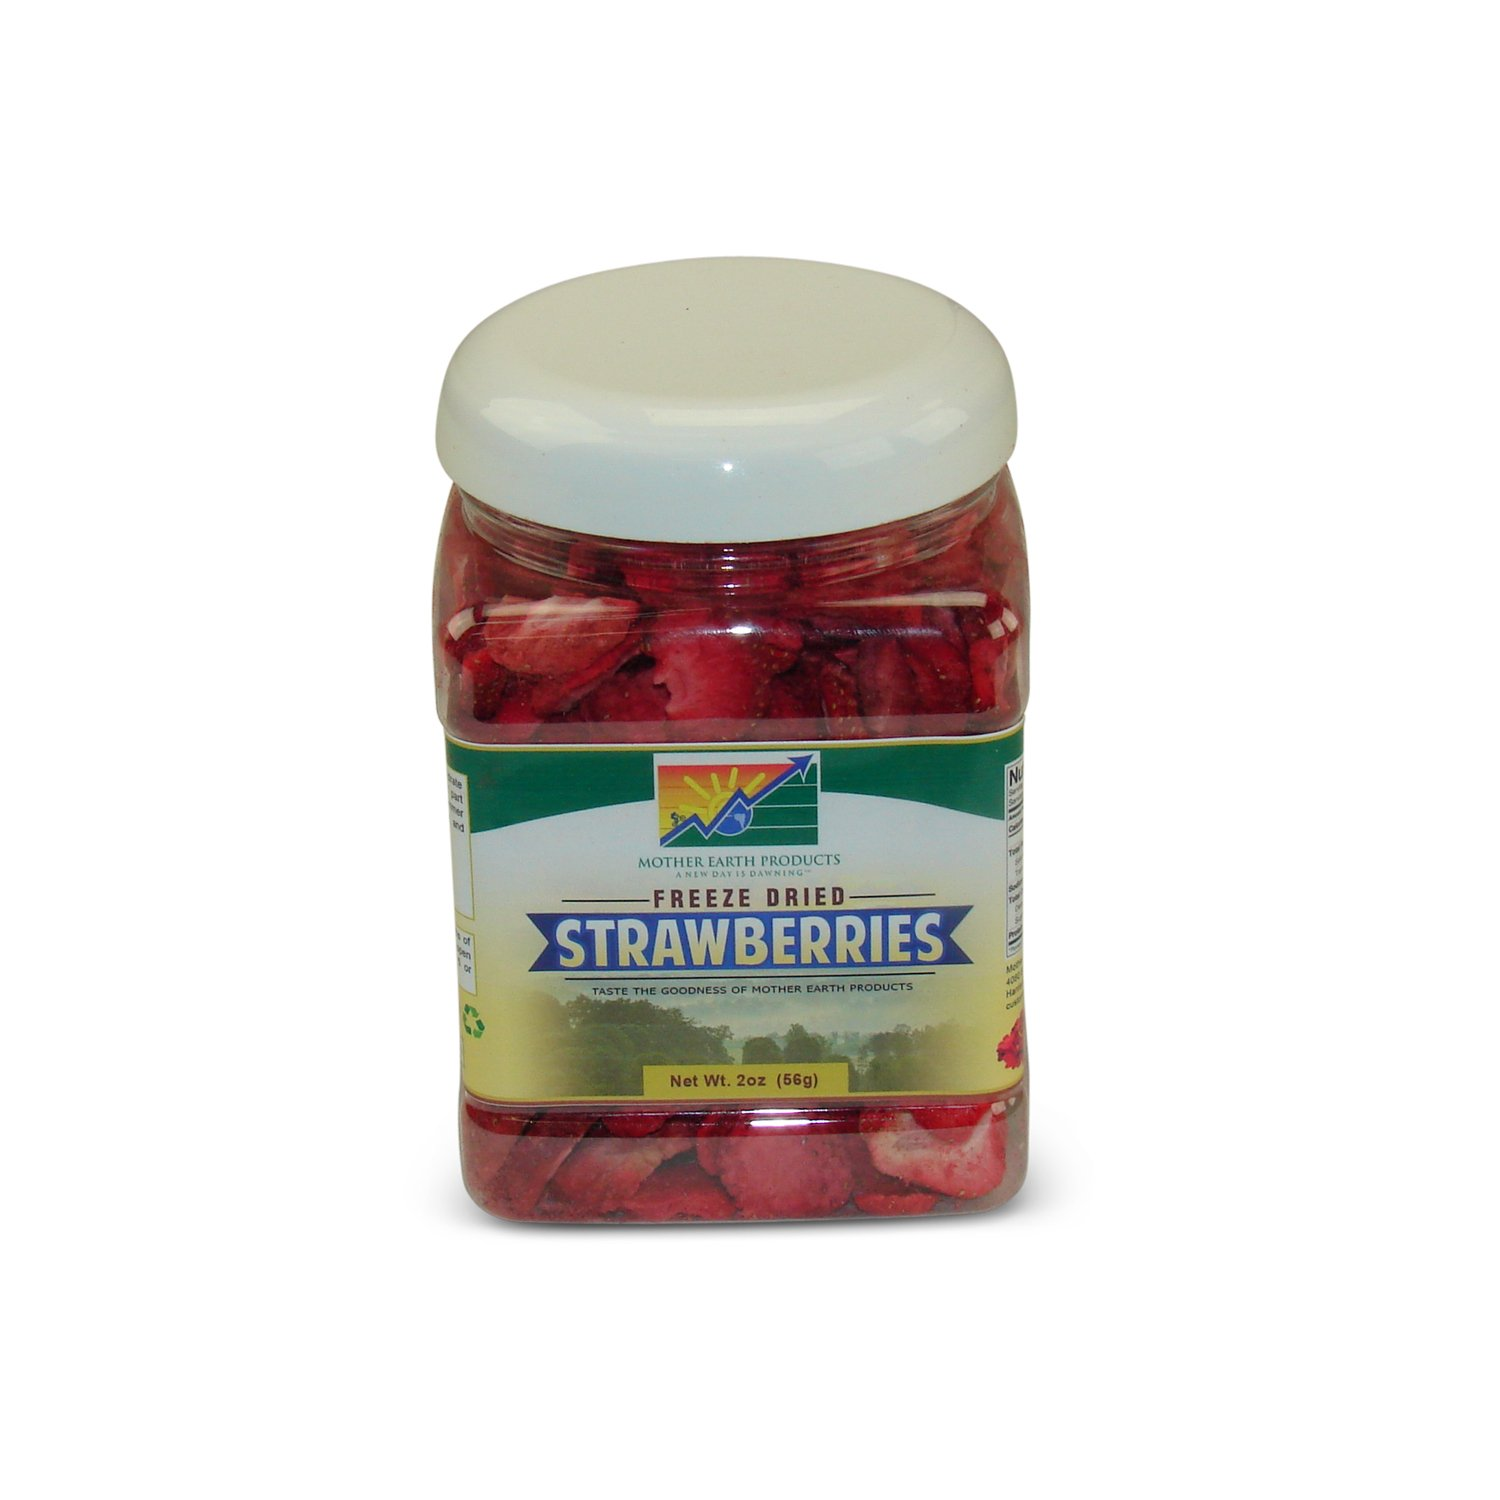 Mother Earth Products Freeze Dried Strawberries, Quart Jar